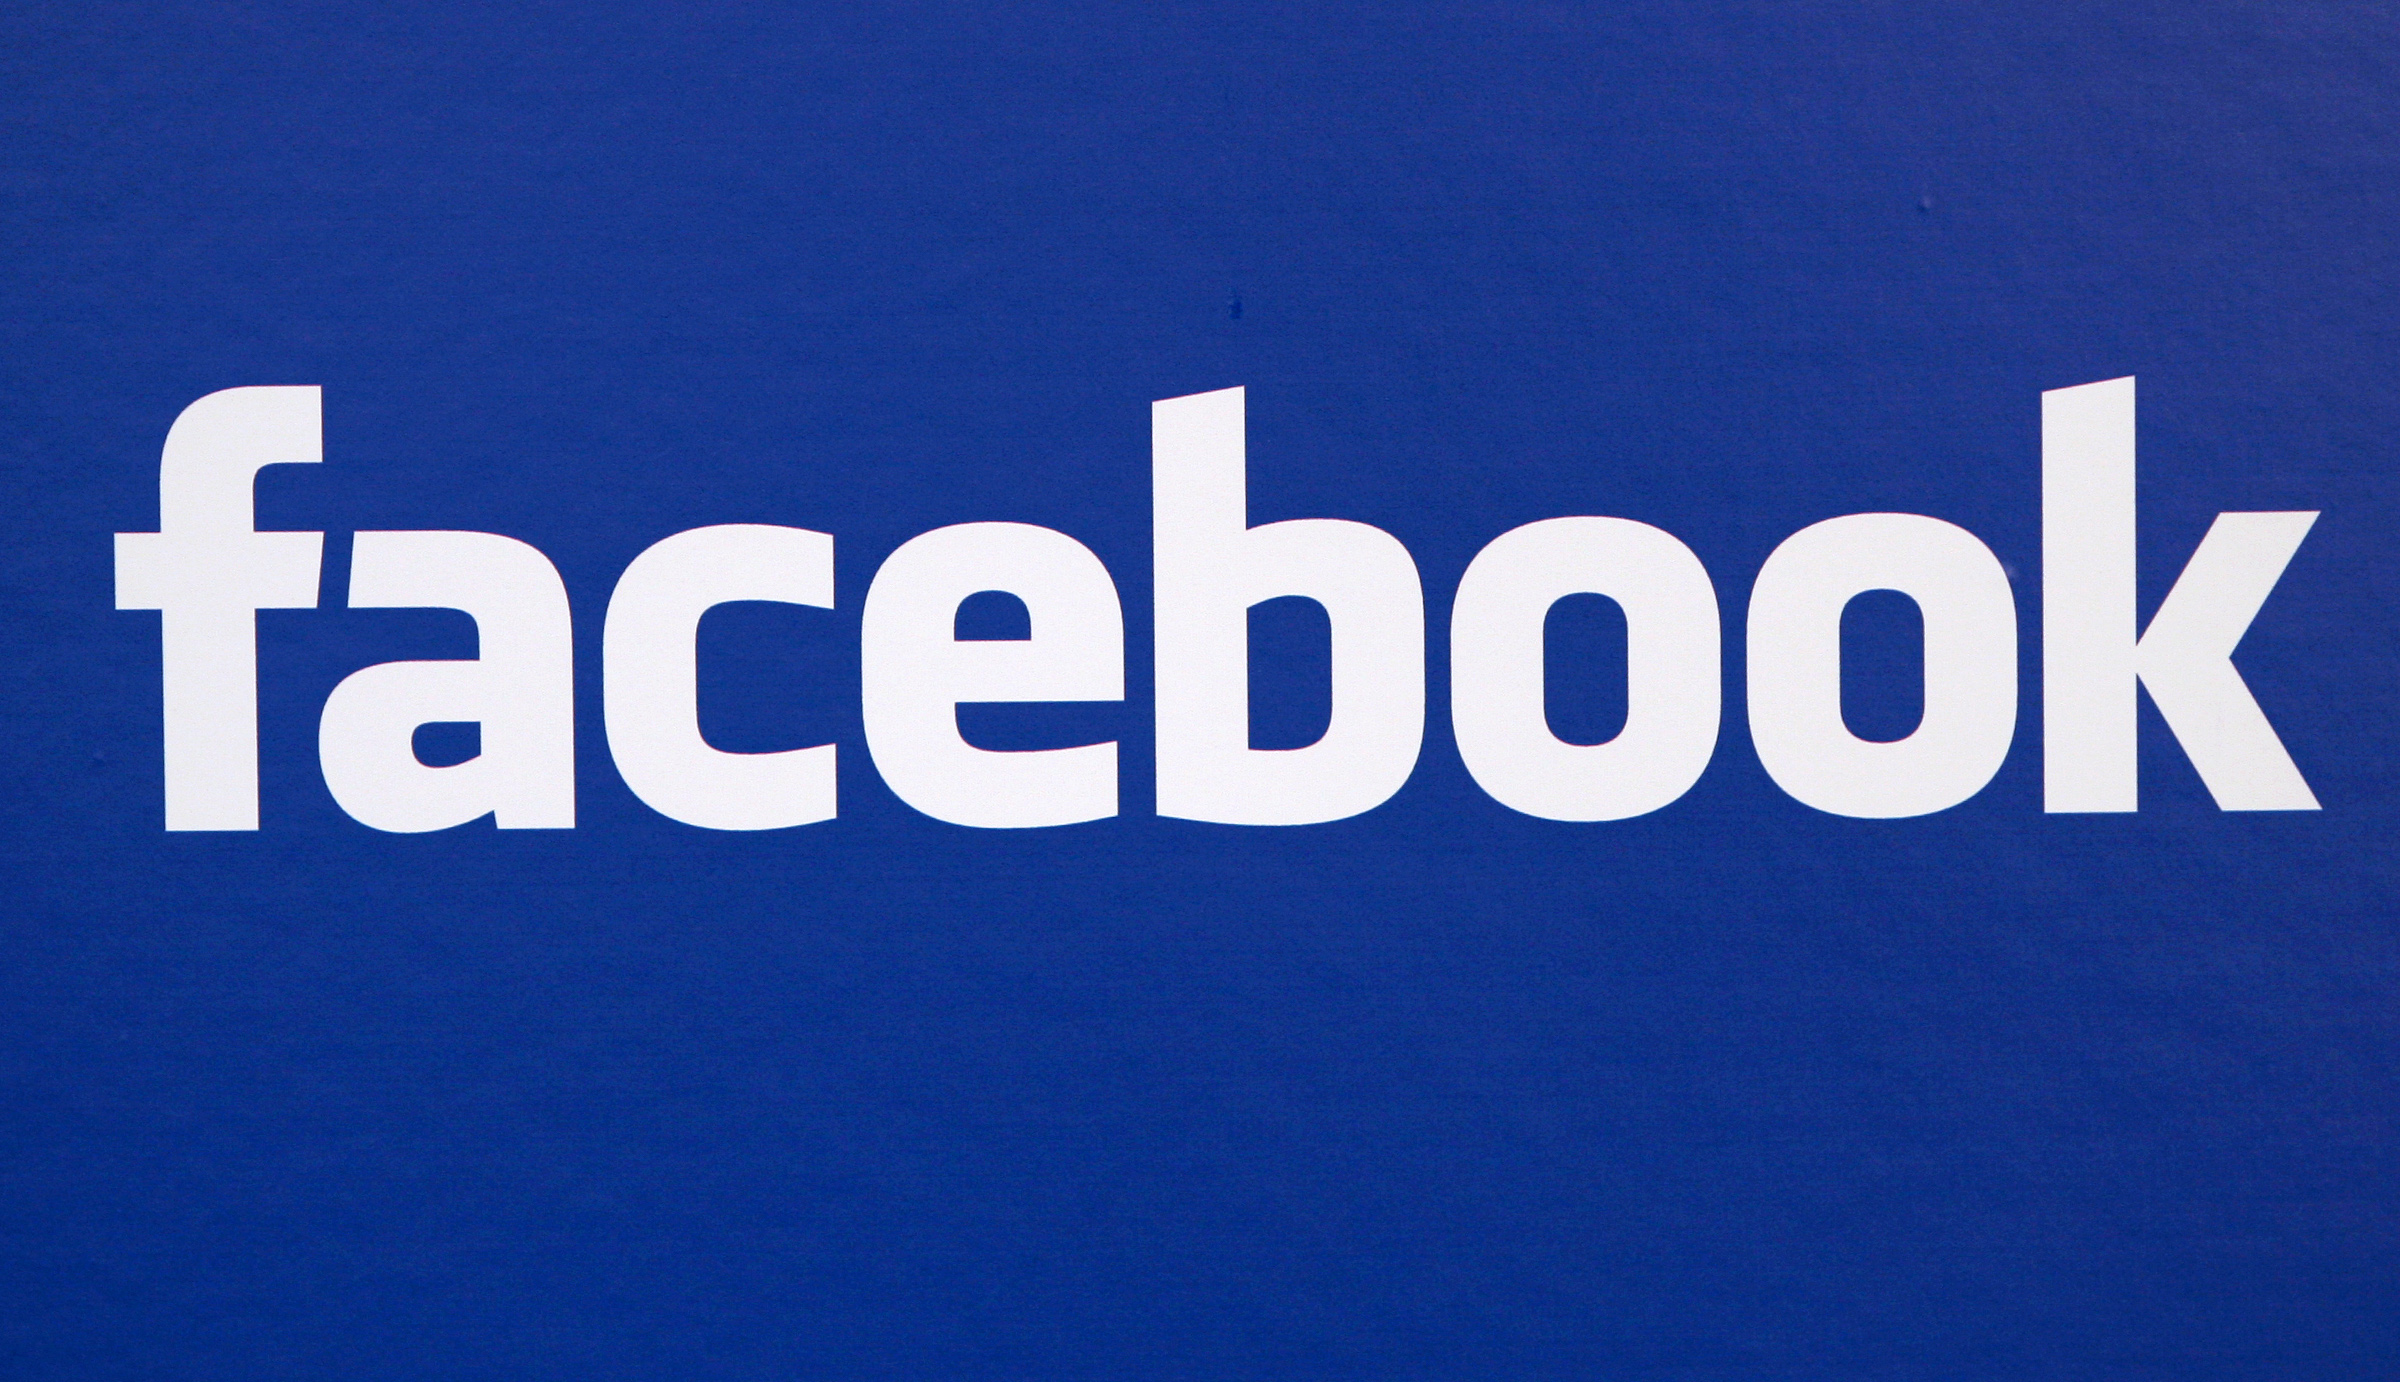 FILE - In this Nov. 6, 2007 file photo, the Facebook logo is displayed at a Facebook announcement in New York.